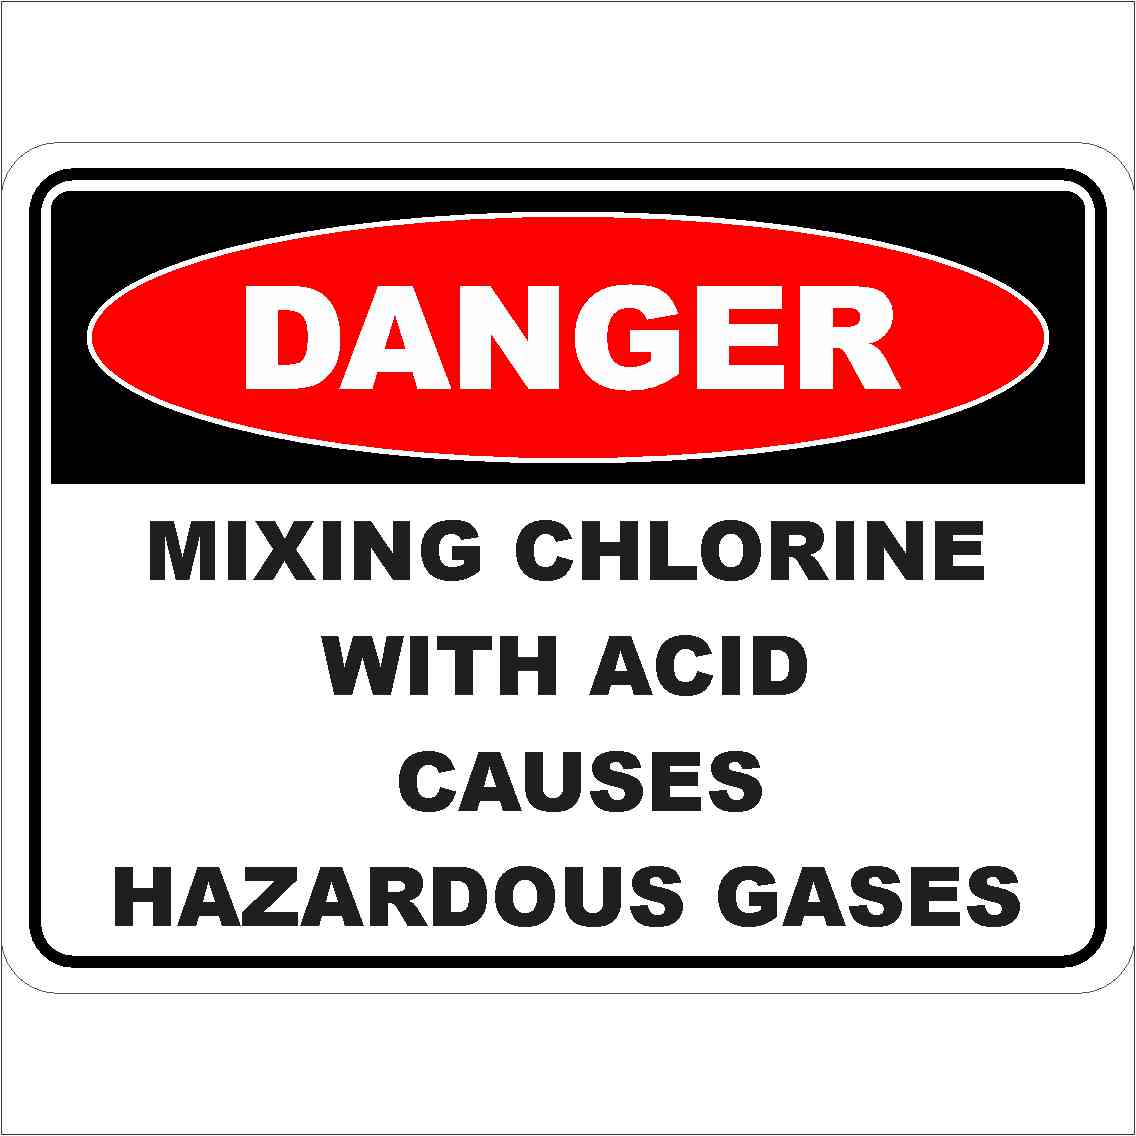 Danger Signs MIXING CHLORINE WITH ACID CAUSES HAZARDOUSE GASES